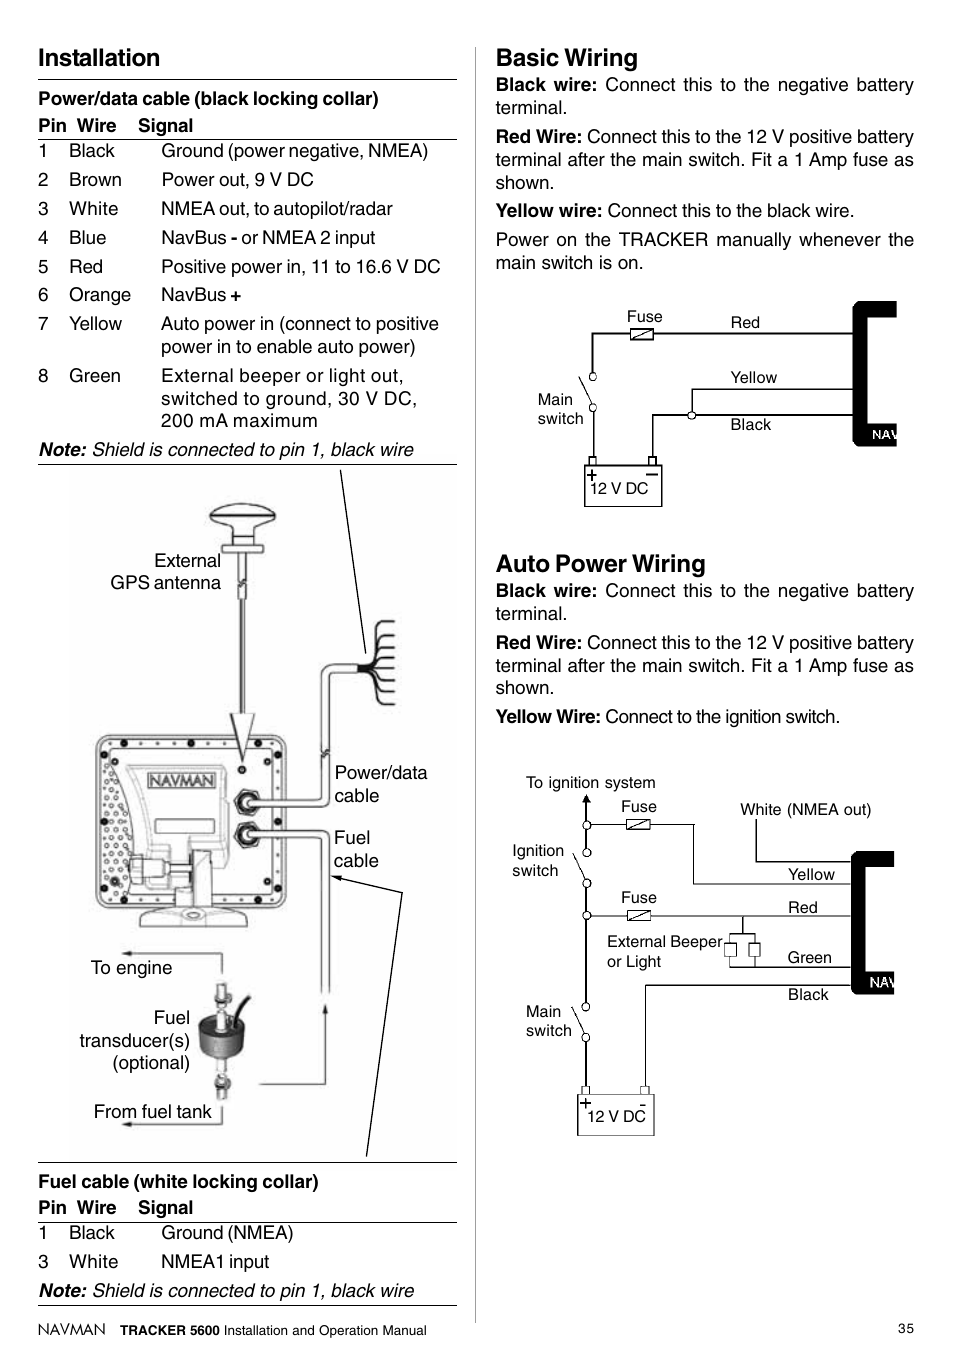 Installation Auto Power Wiring Basic Navman Tracker Electrical Light Switch Red Wire Plotter 5600 User Manual Page 35 42